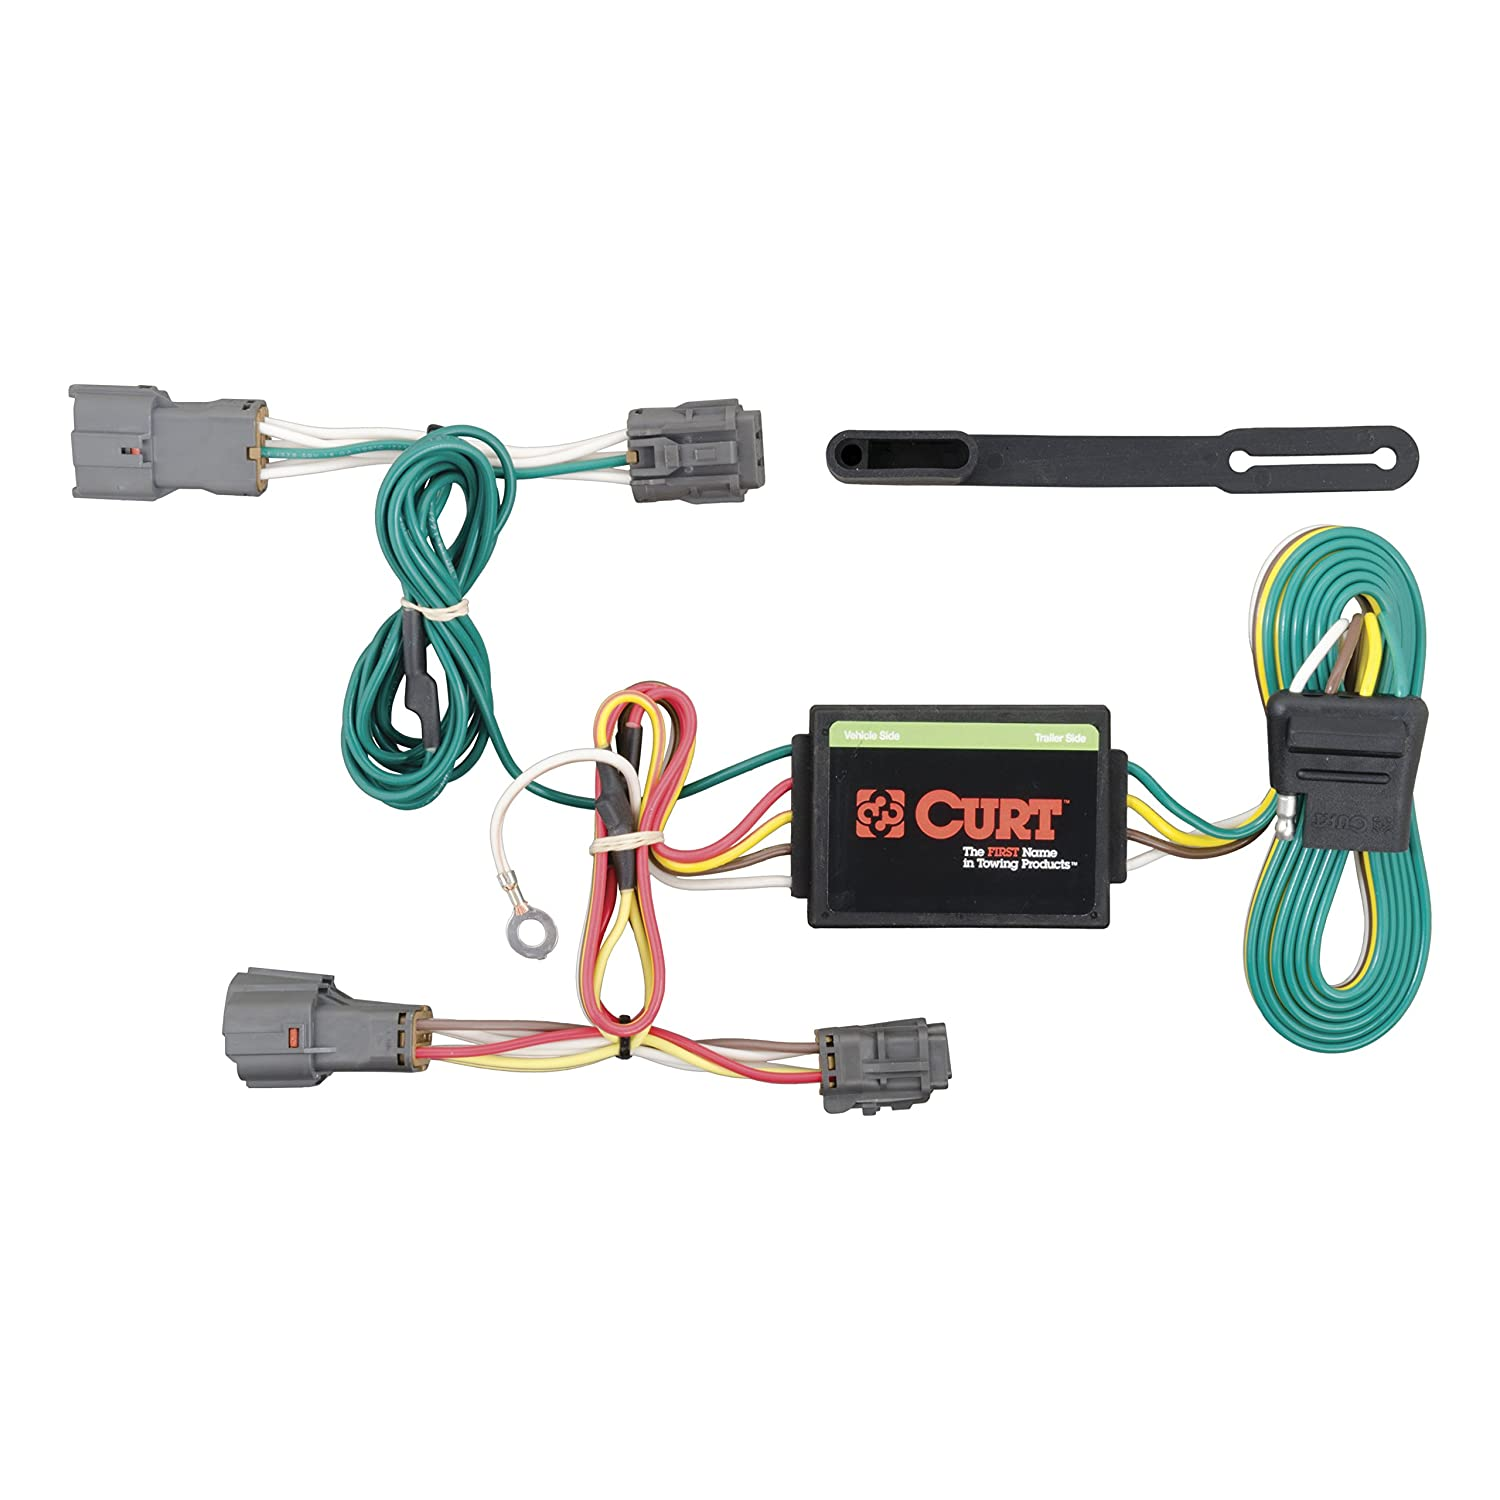 81RozKWvKyL._SL1500_ amazon com curt 56222 custom wiring harness automotive 2015 Kia Soul Rear at gsmx.co